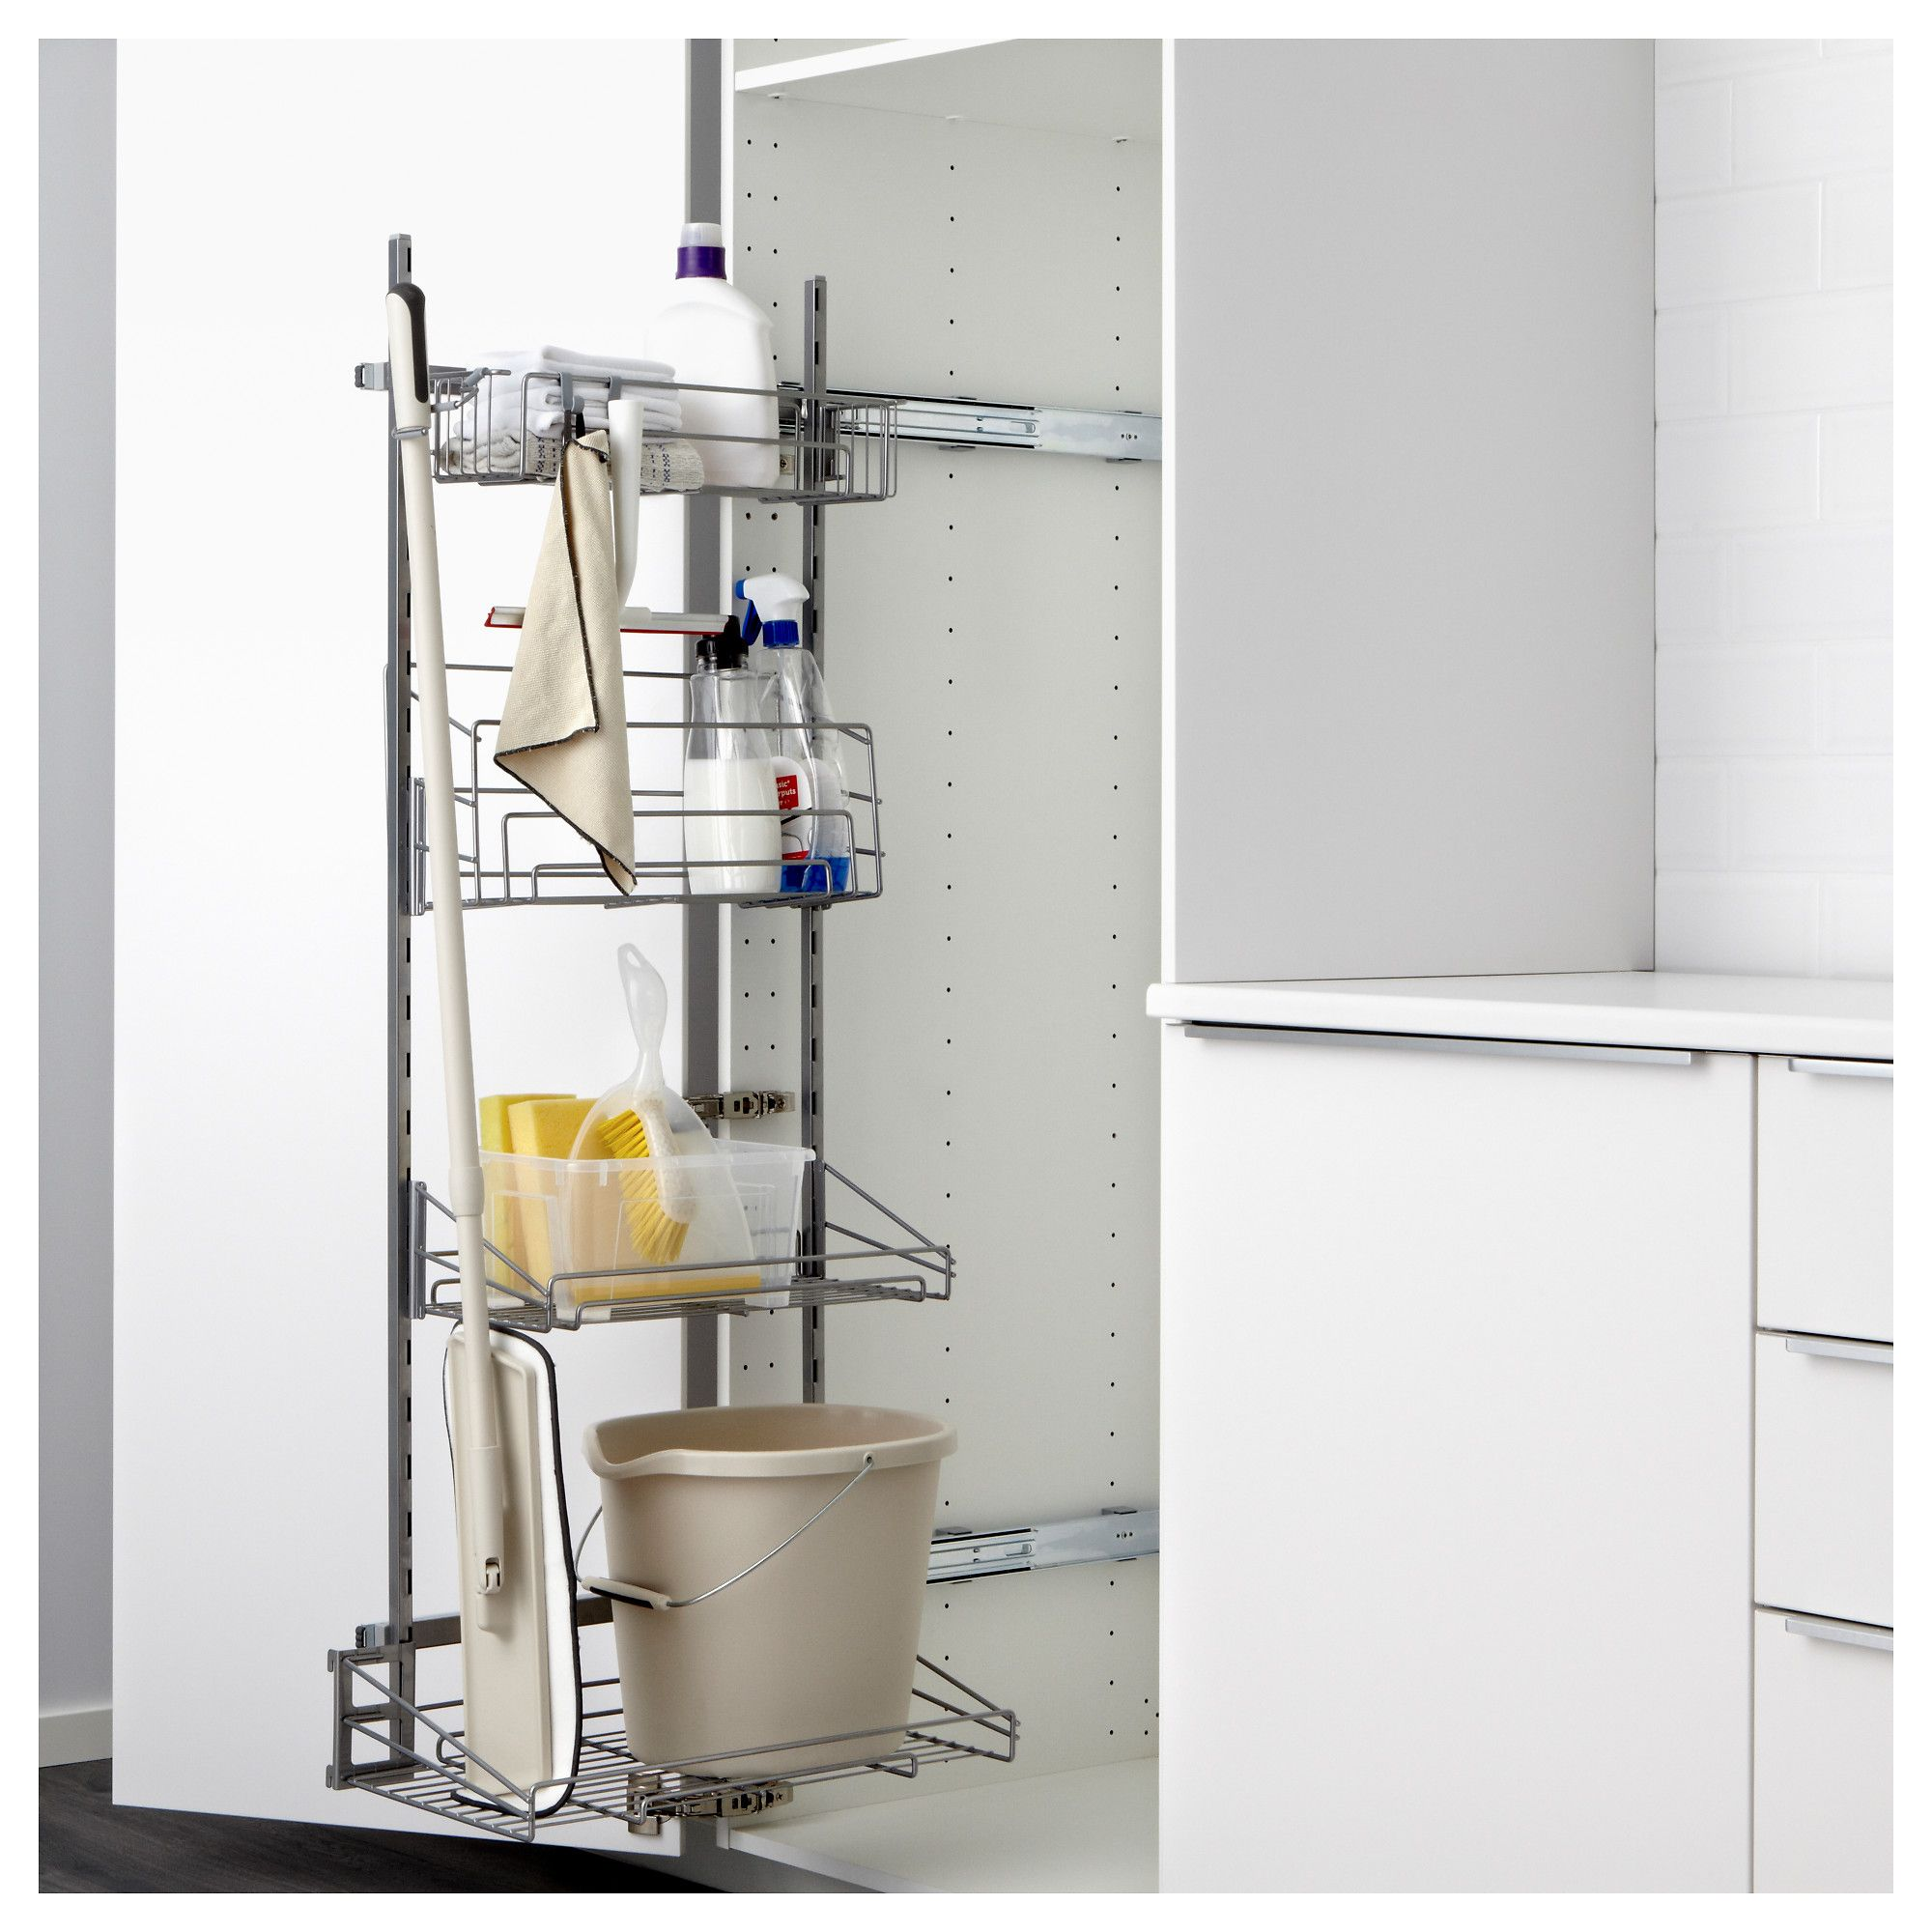 Ikea Küche Utrusta Ikea Utrusta Pull Out Rack For Cleaning Supplies In 2019